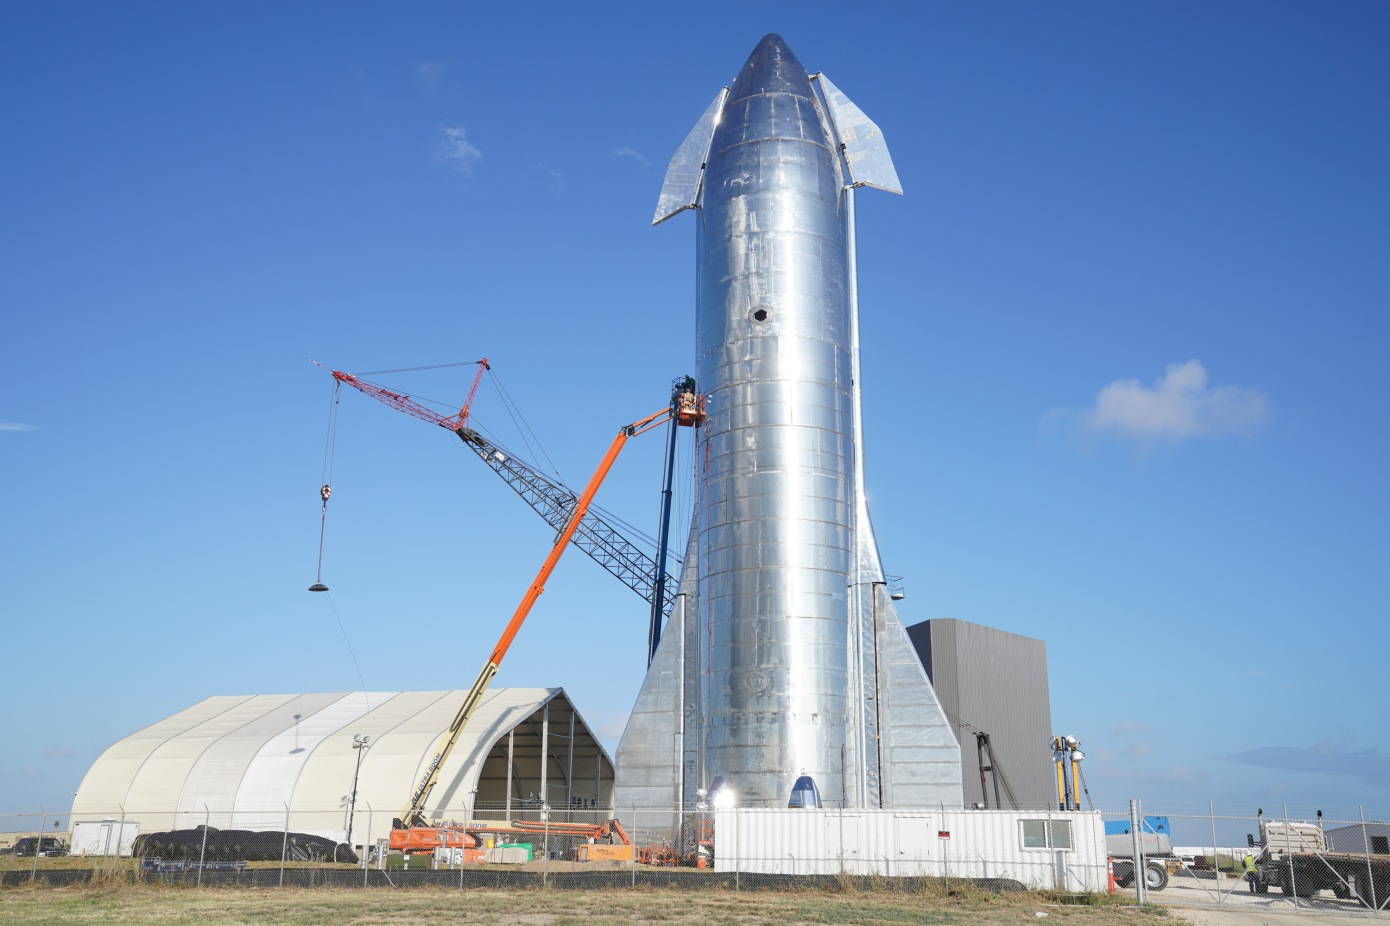 https://techcrunch.com/wp-content/uploads/2019/09/SpaceX-Starship-Mk1-17.jpg?w=1390&crop=1